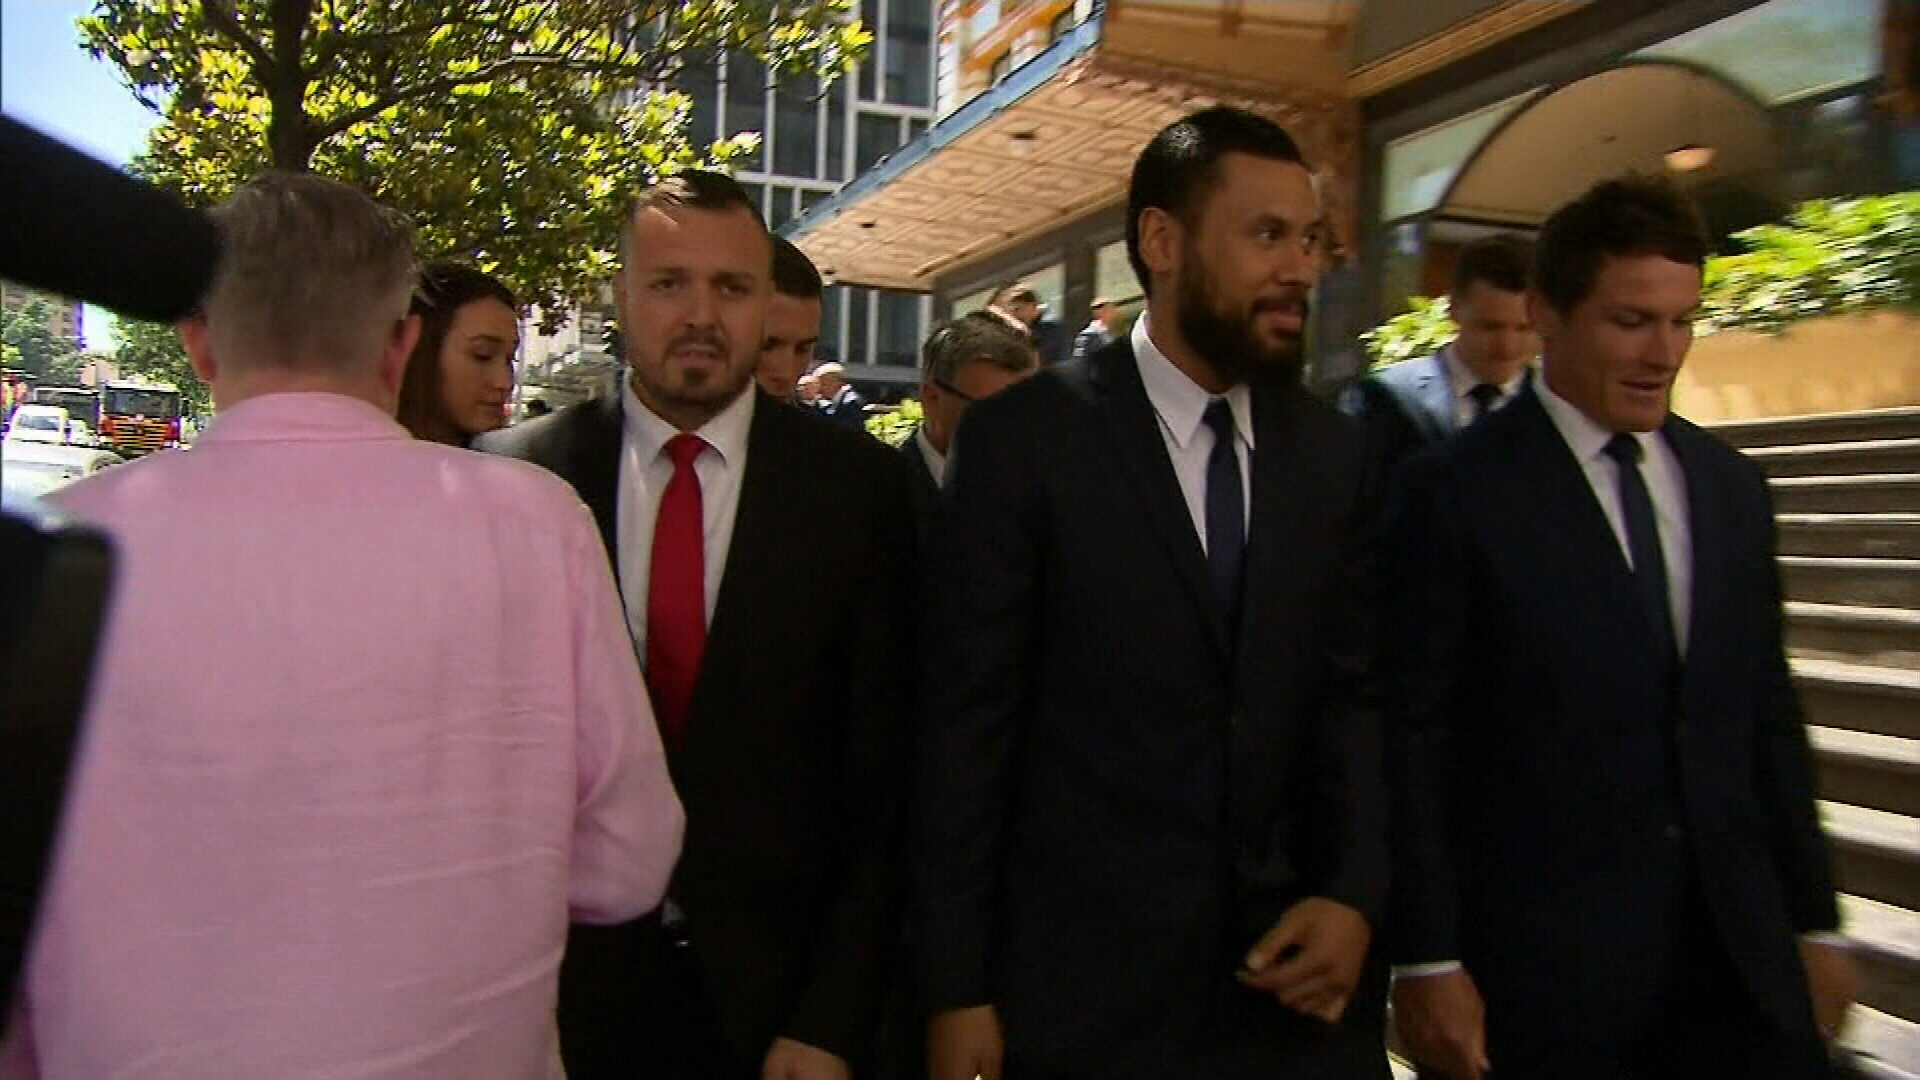 Mad Monday Bulldogs players plead guilty to obscene exposure